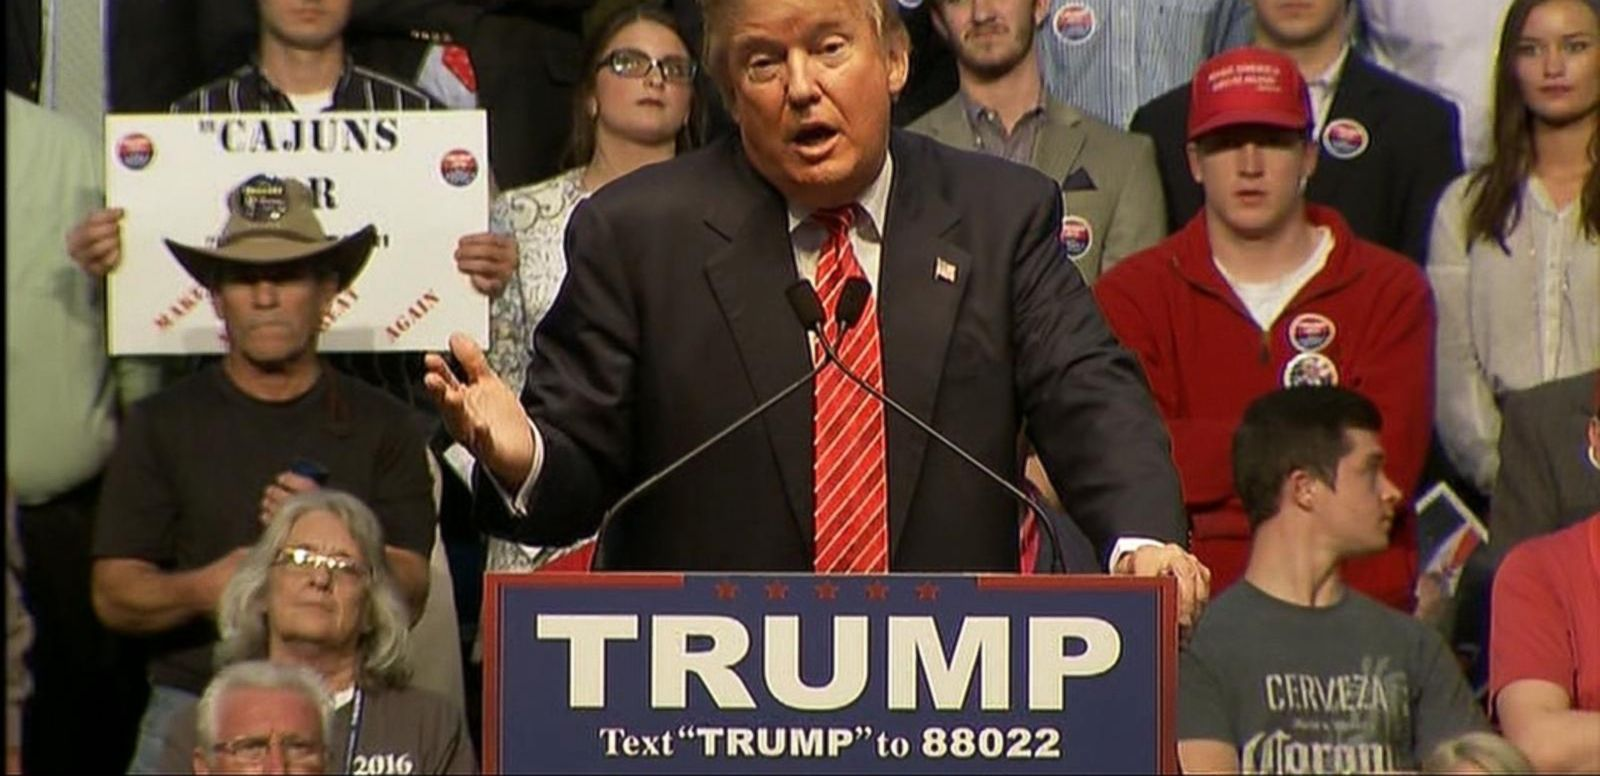 VIDEO: Donald Trump Takes Gentler Approach in Presidential Campaign